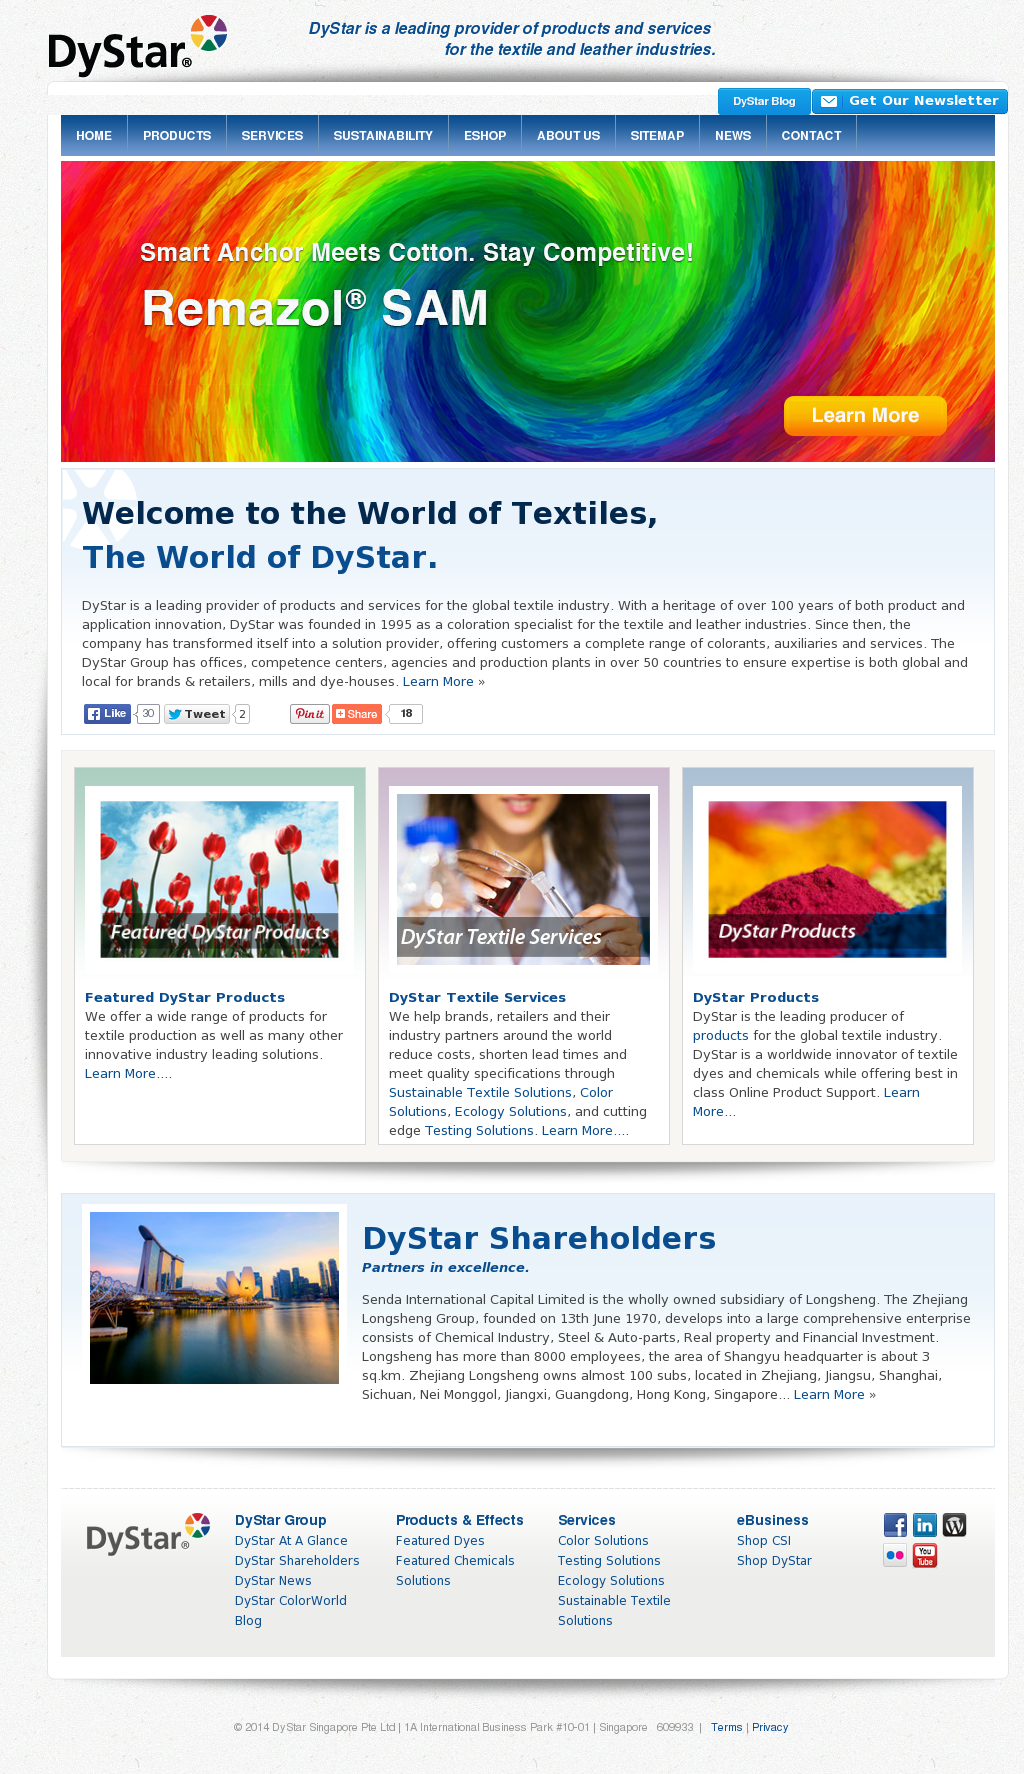 DyStar Competitors, Revenue and Employees - Owler Company Profile